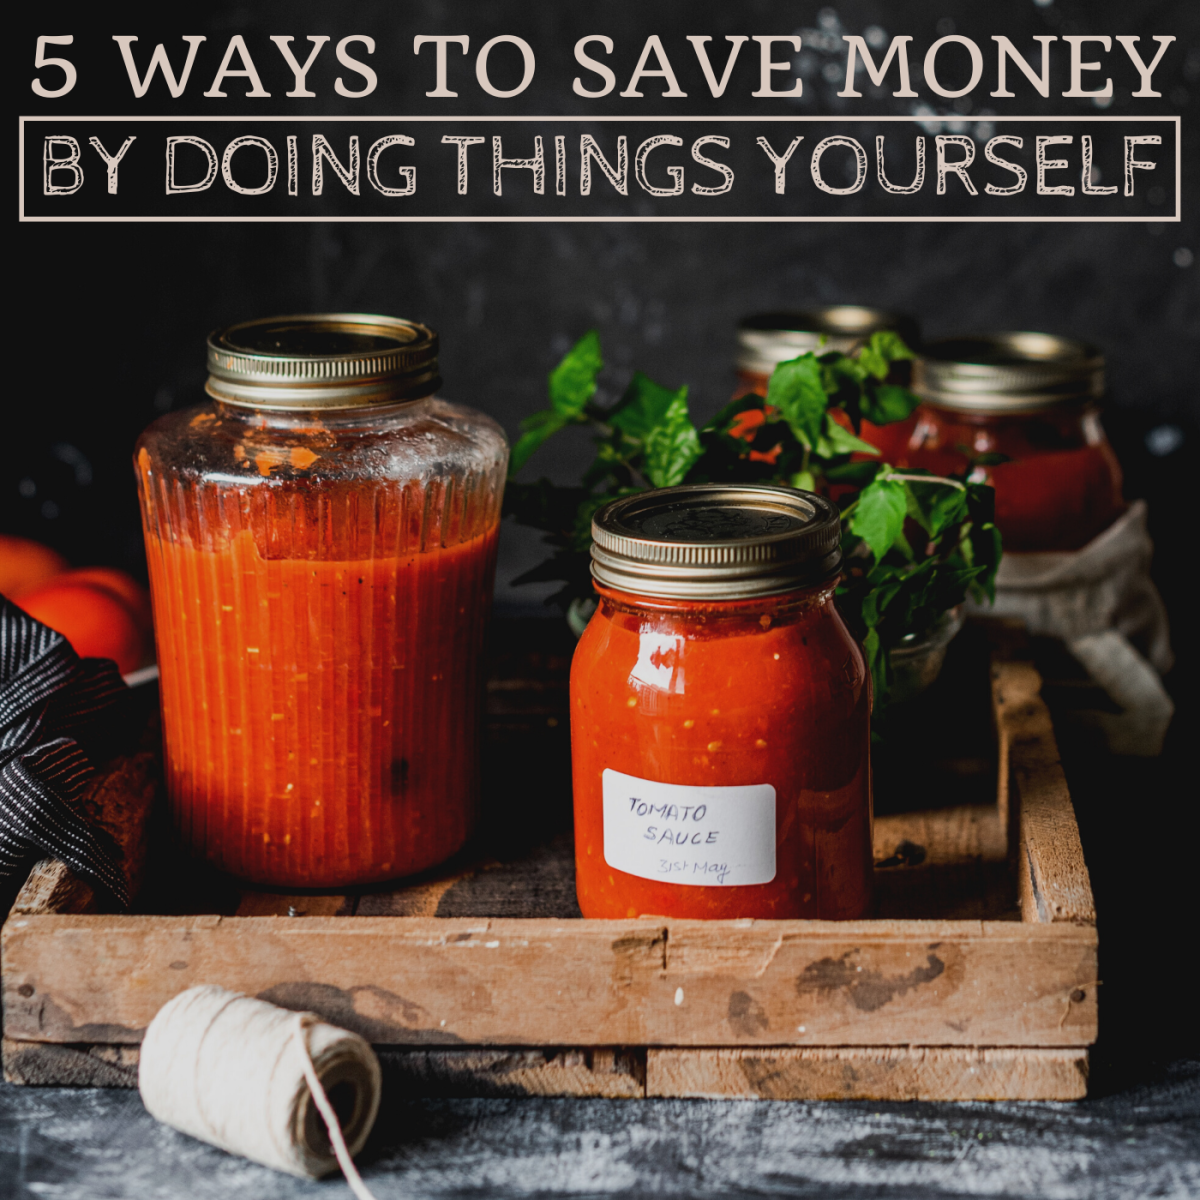 By mending, canning, gleaning, and picking, you can learn valuable skills and save money.